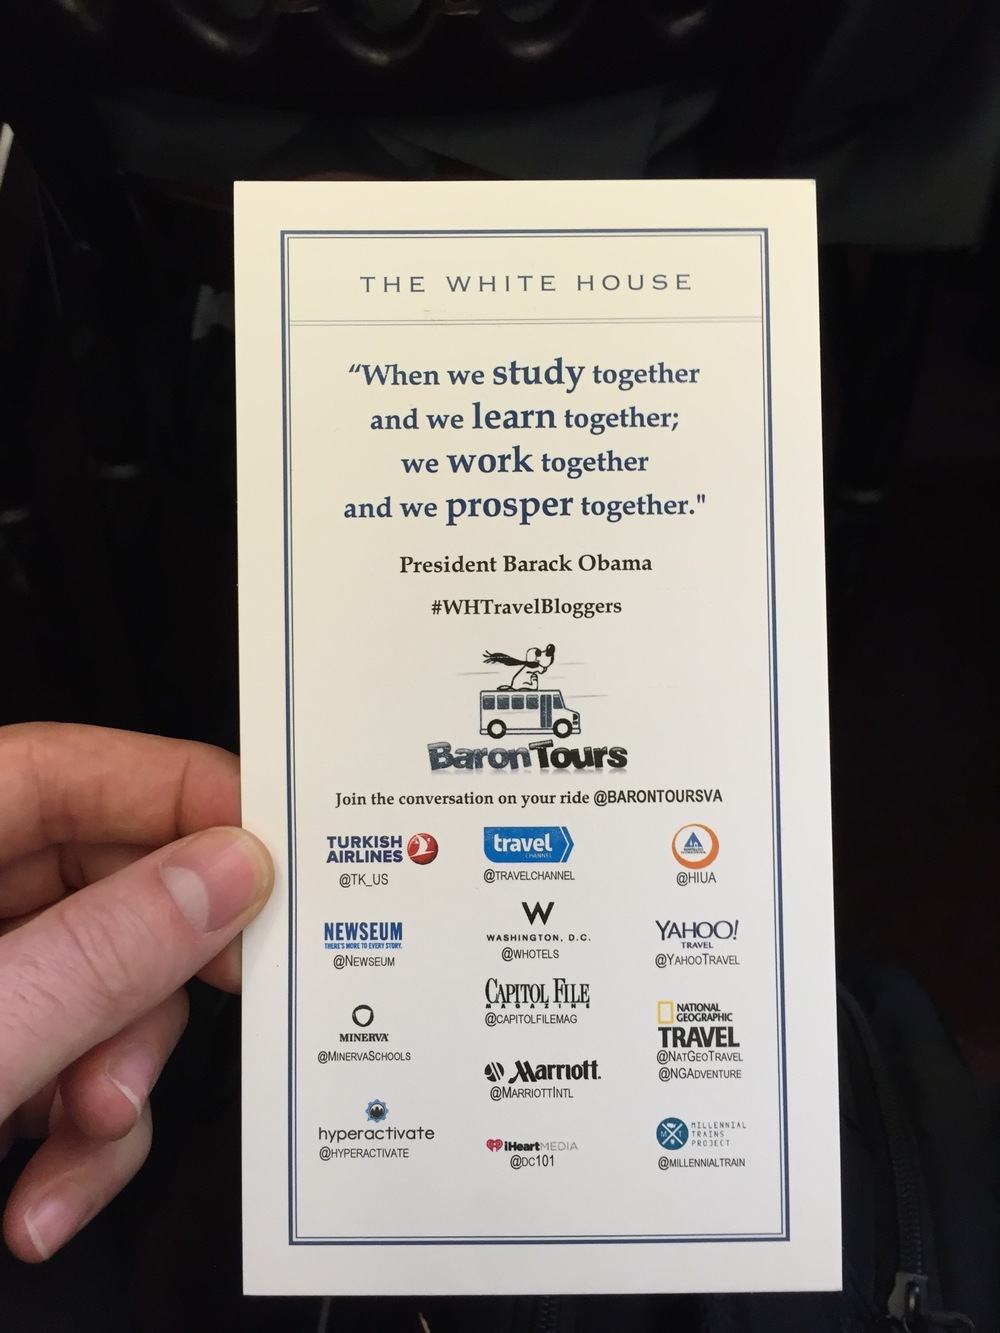 Hyperactivate on The White House handout